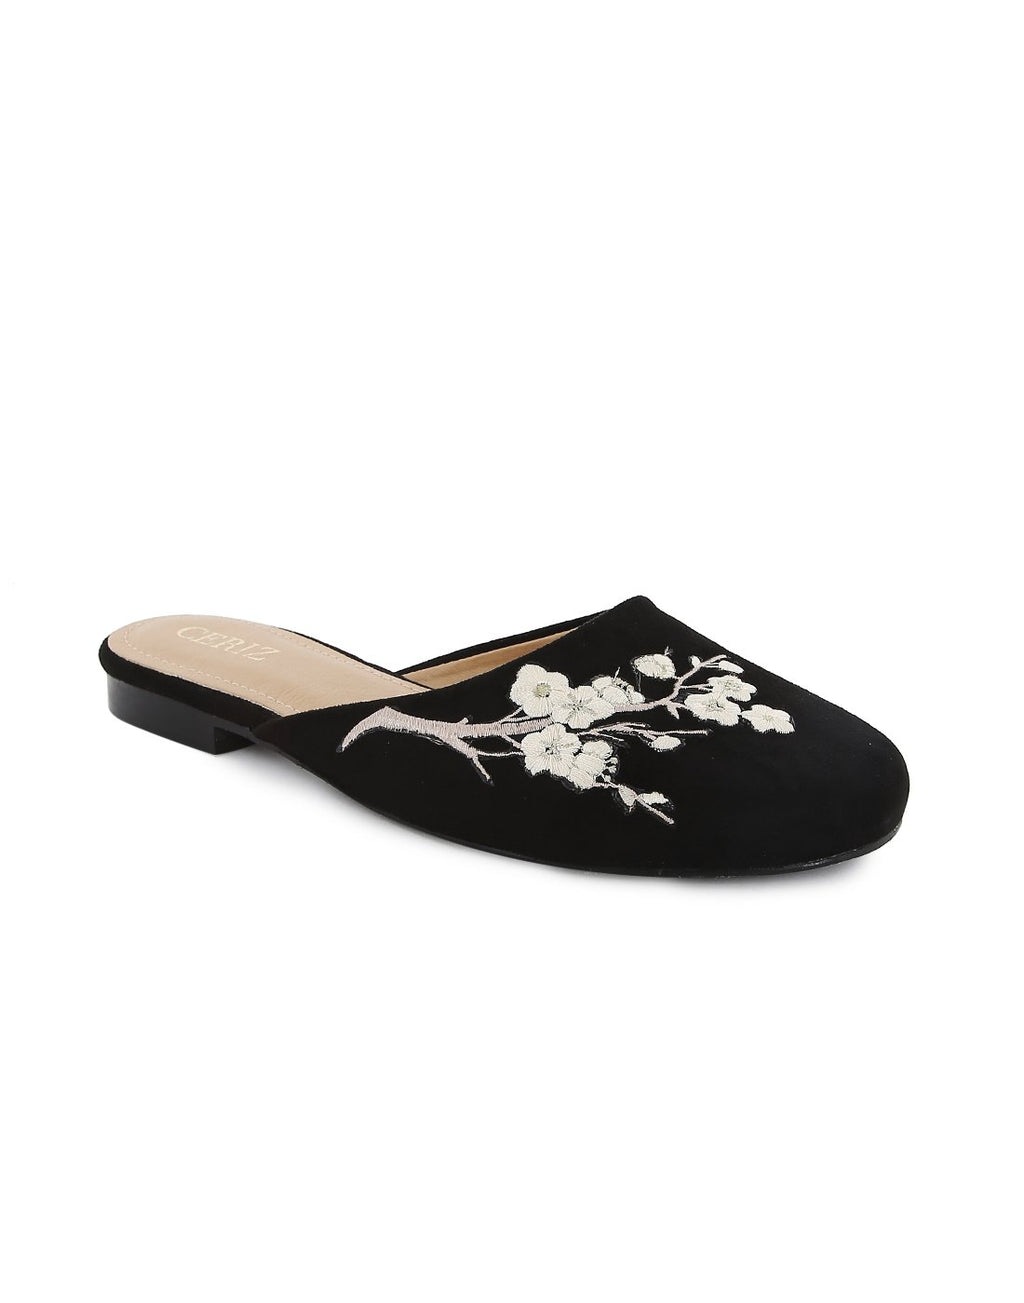 Felicia Floral Round Toe Loafer